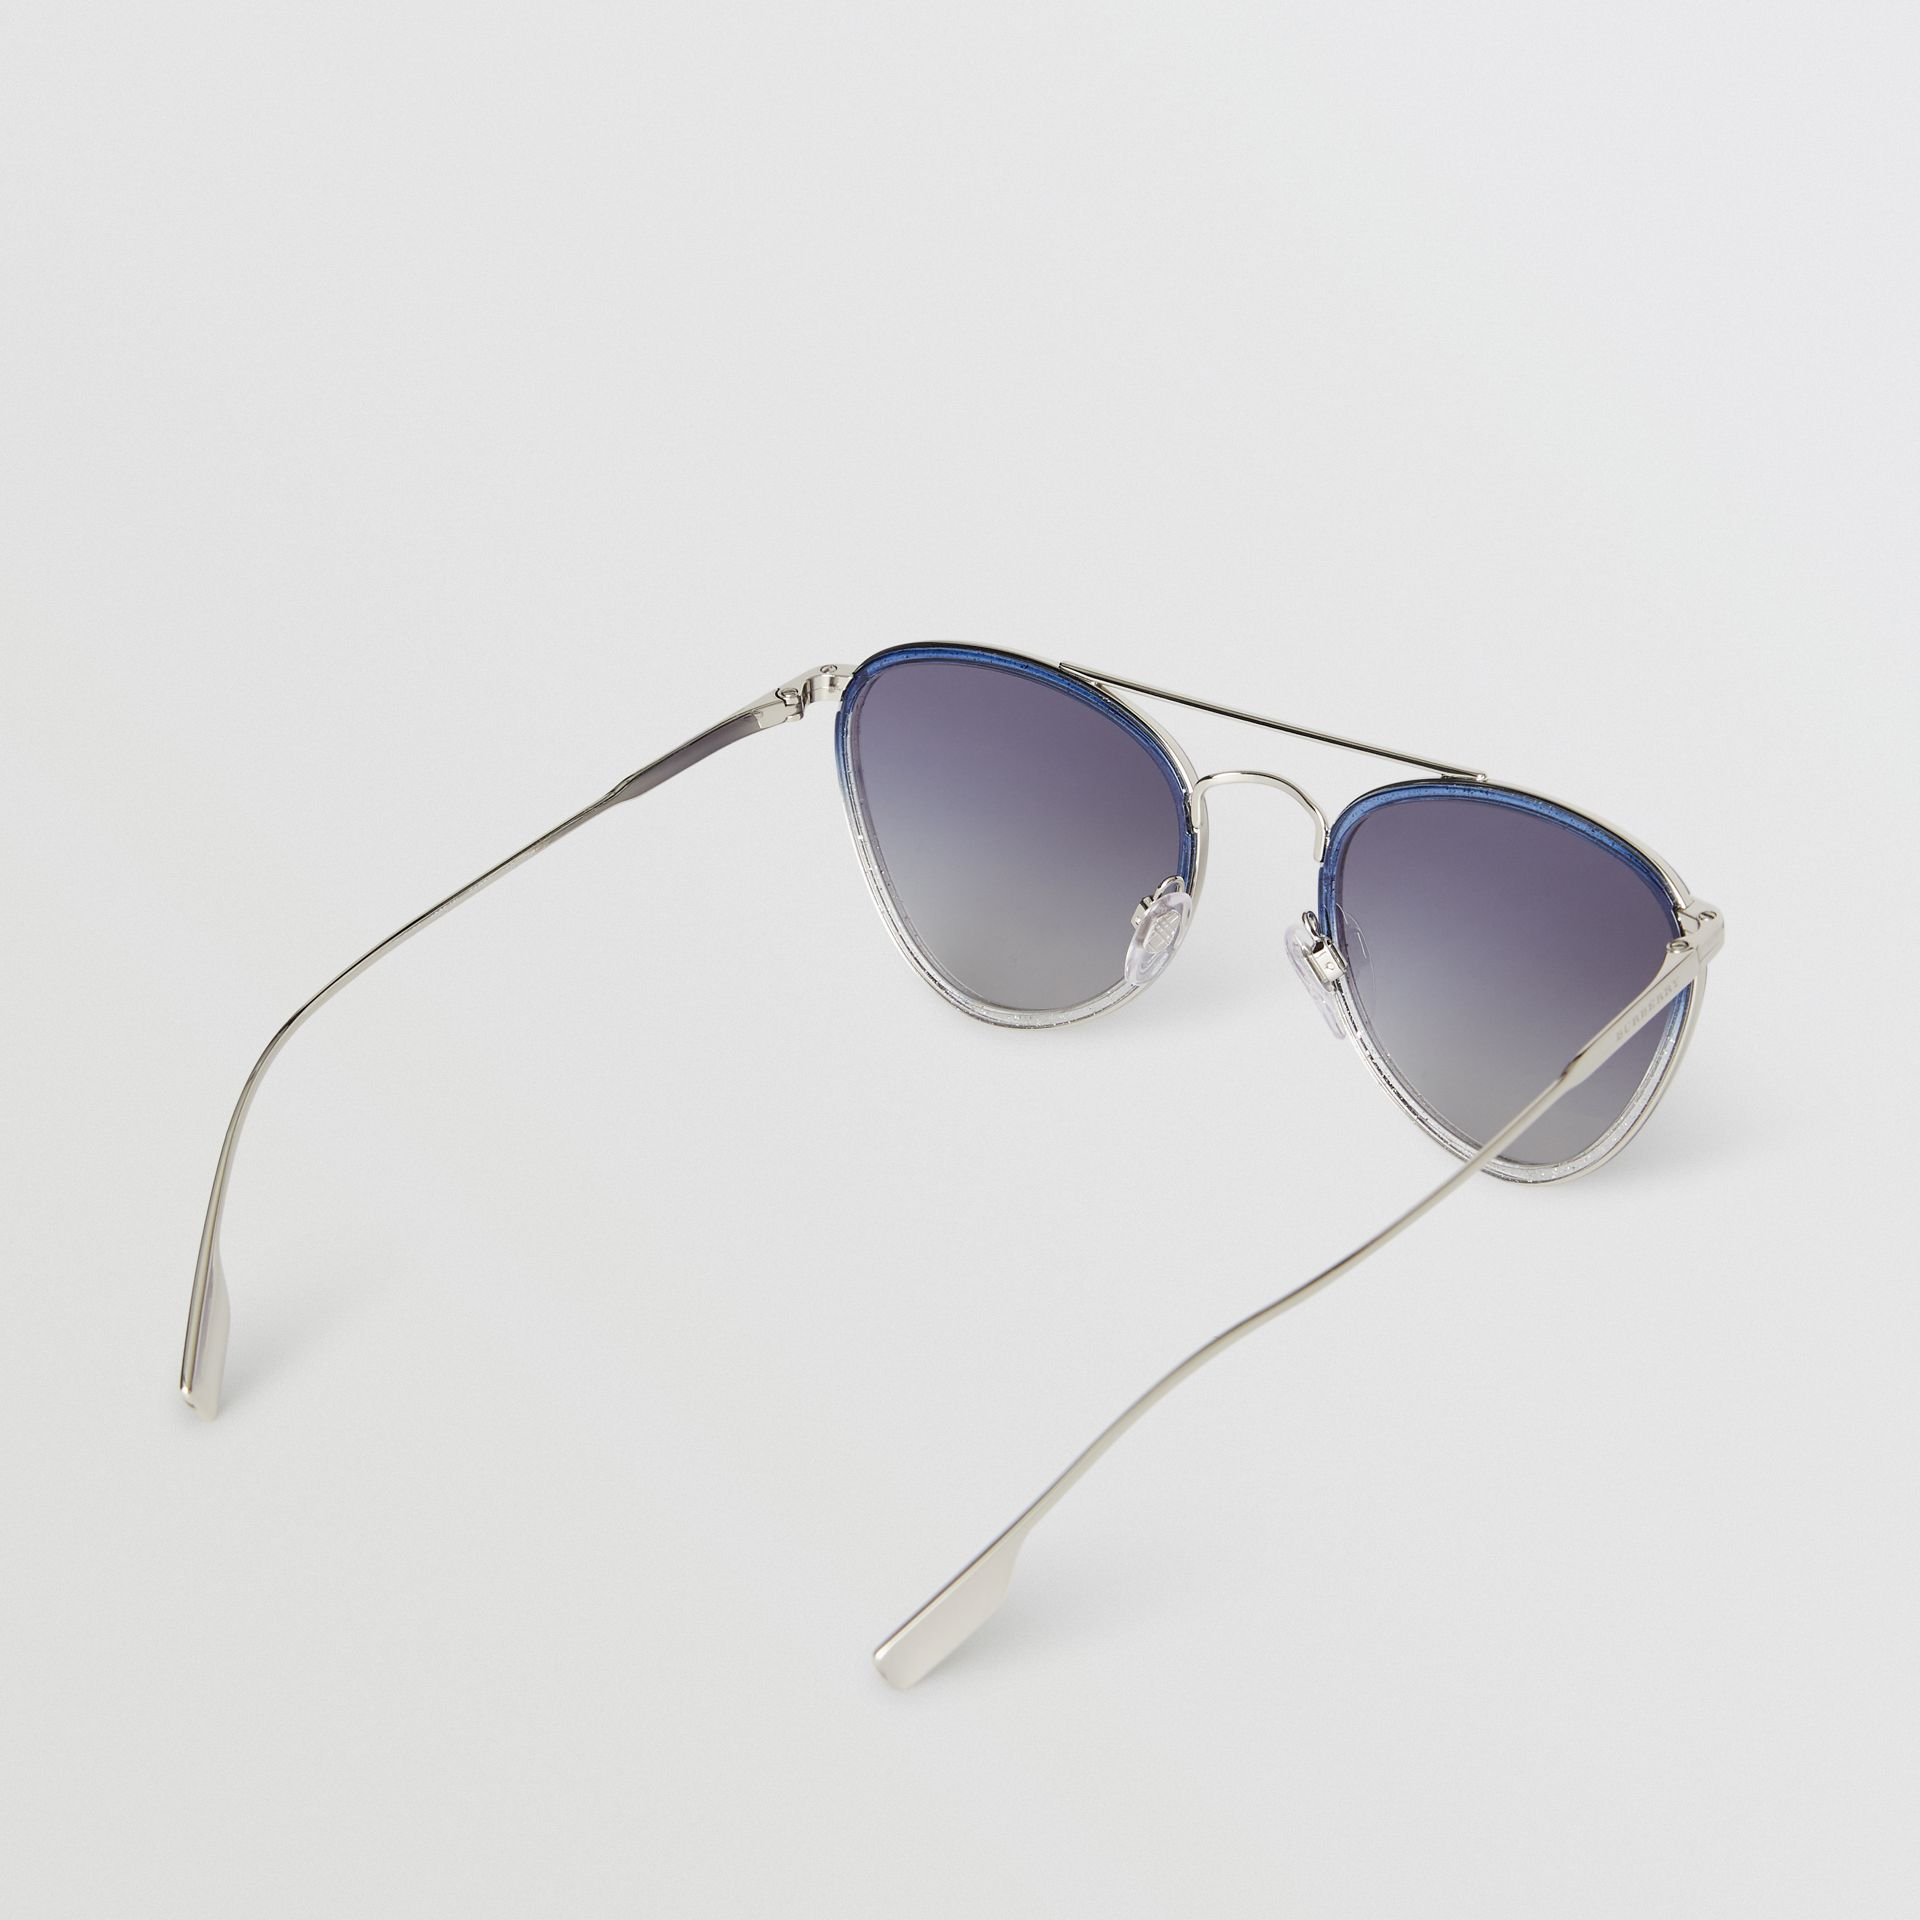 Glitter Detail Pilot Sunglasses in Blue - Women | Burberry - gallery image 4